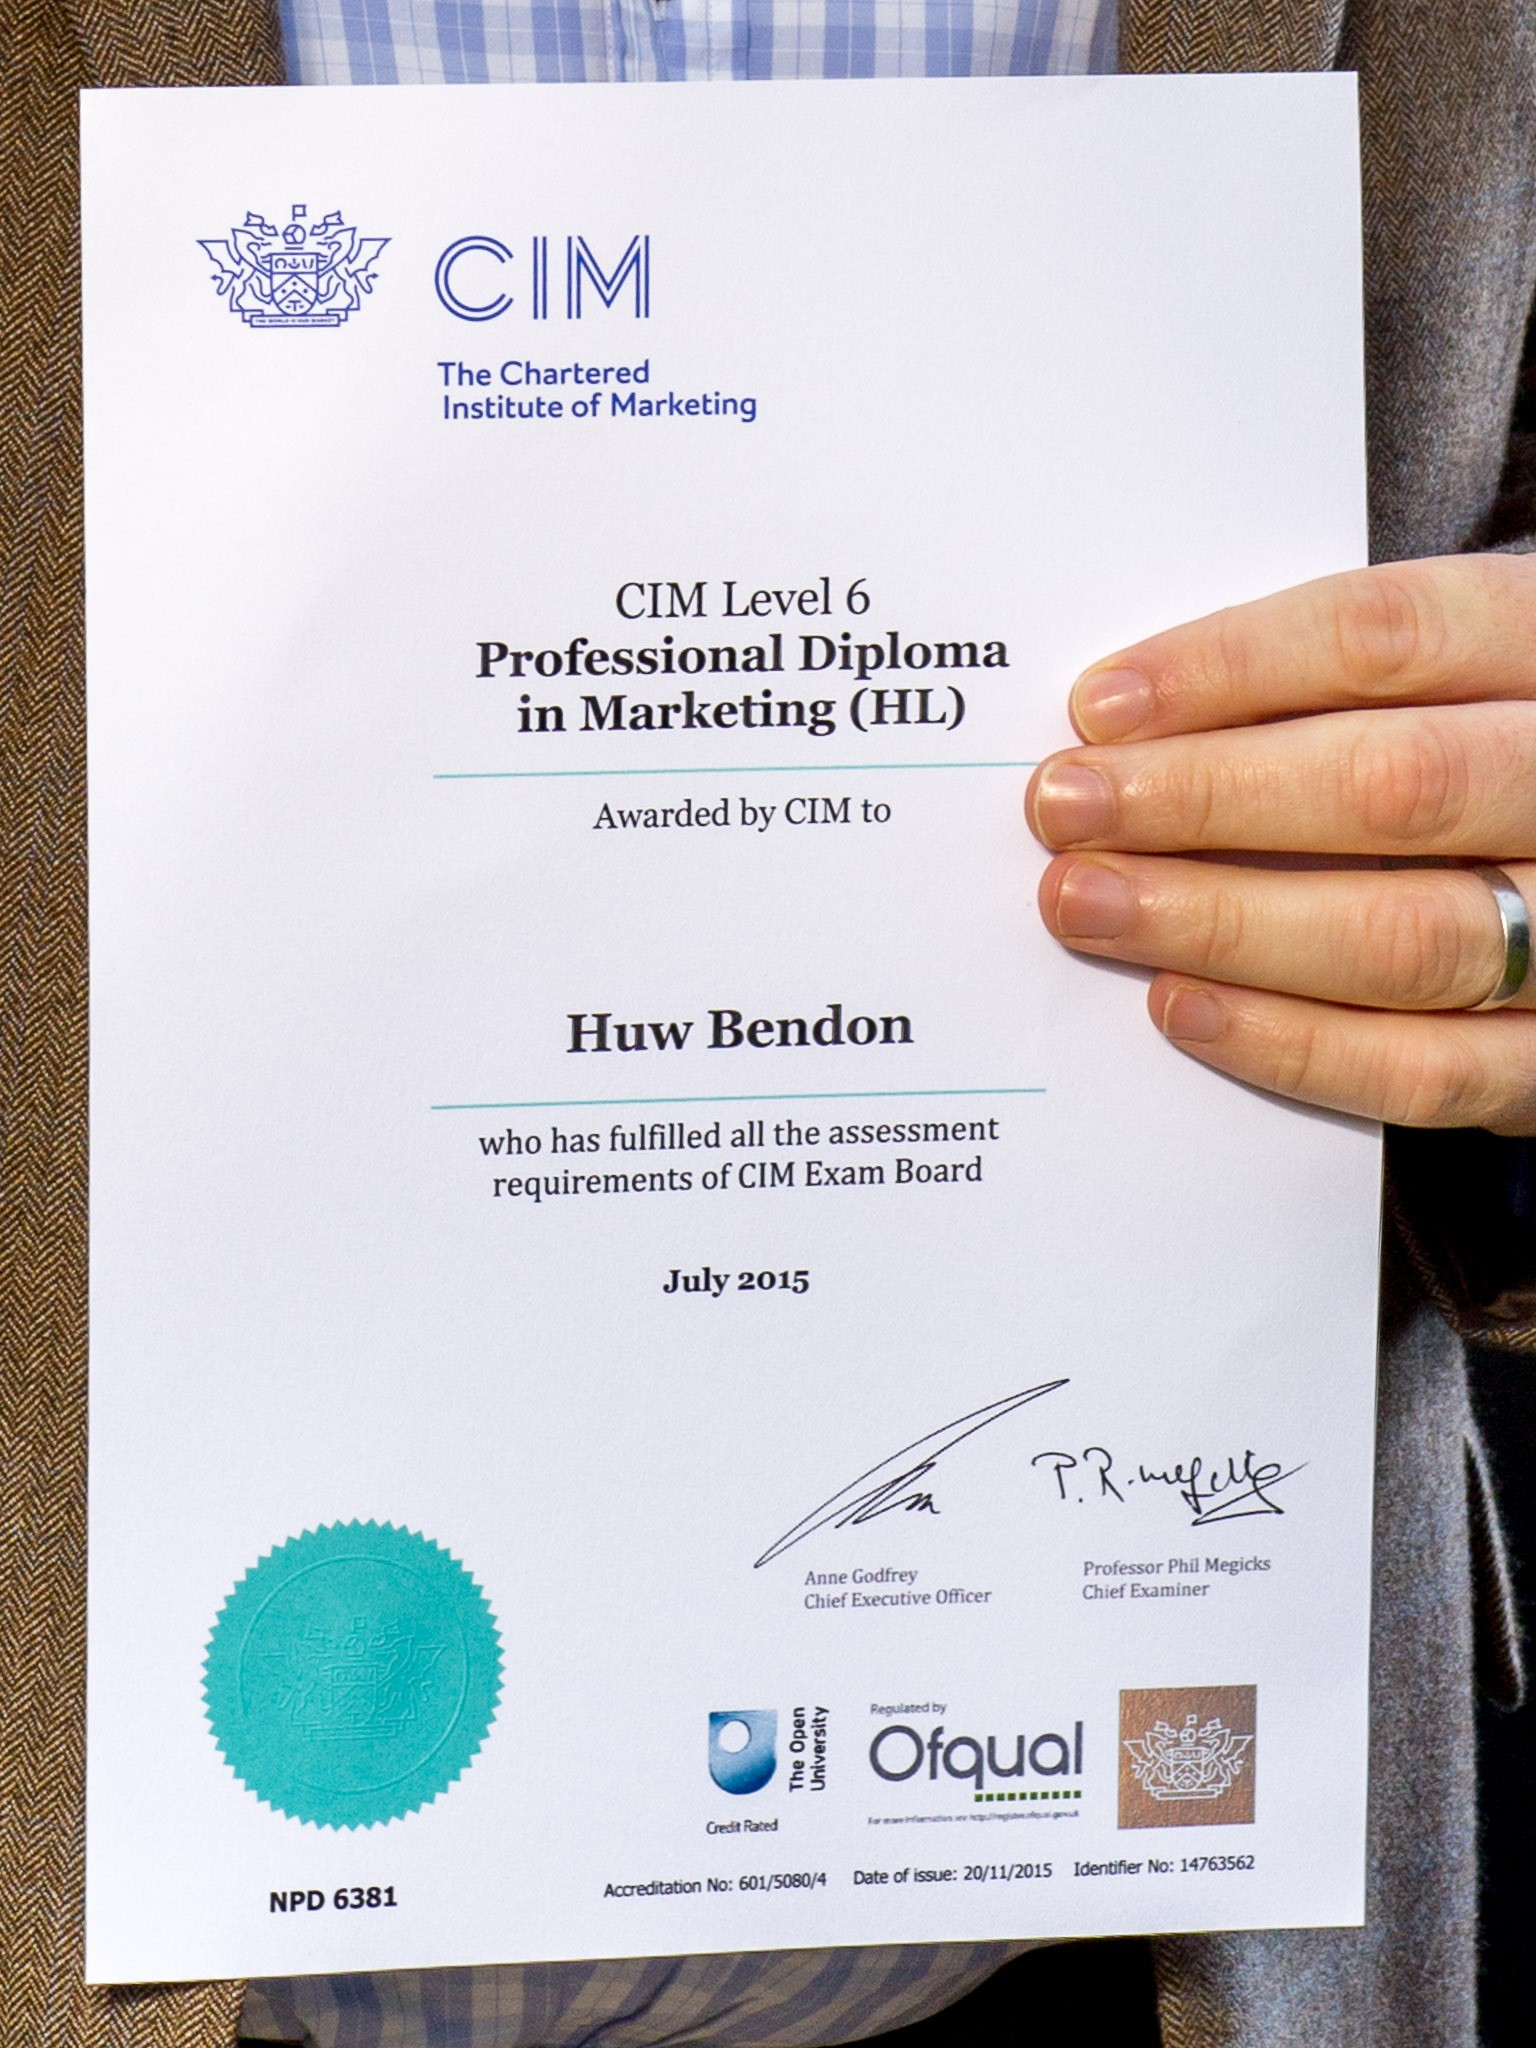 cim certificate 08-05-2018 cima students and members forum skip navigation home help search calendar welcome guest please login or register  cima students and members forum home cima strategic general  general objective tests - cima e1 - f1 - p1 operational case study cima certificate general computer based.